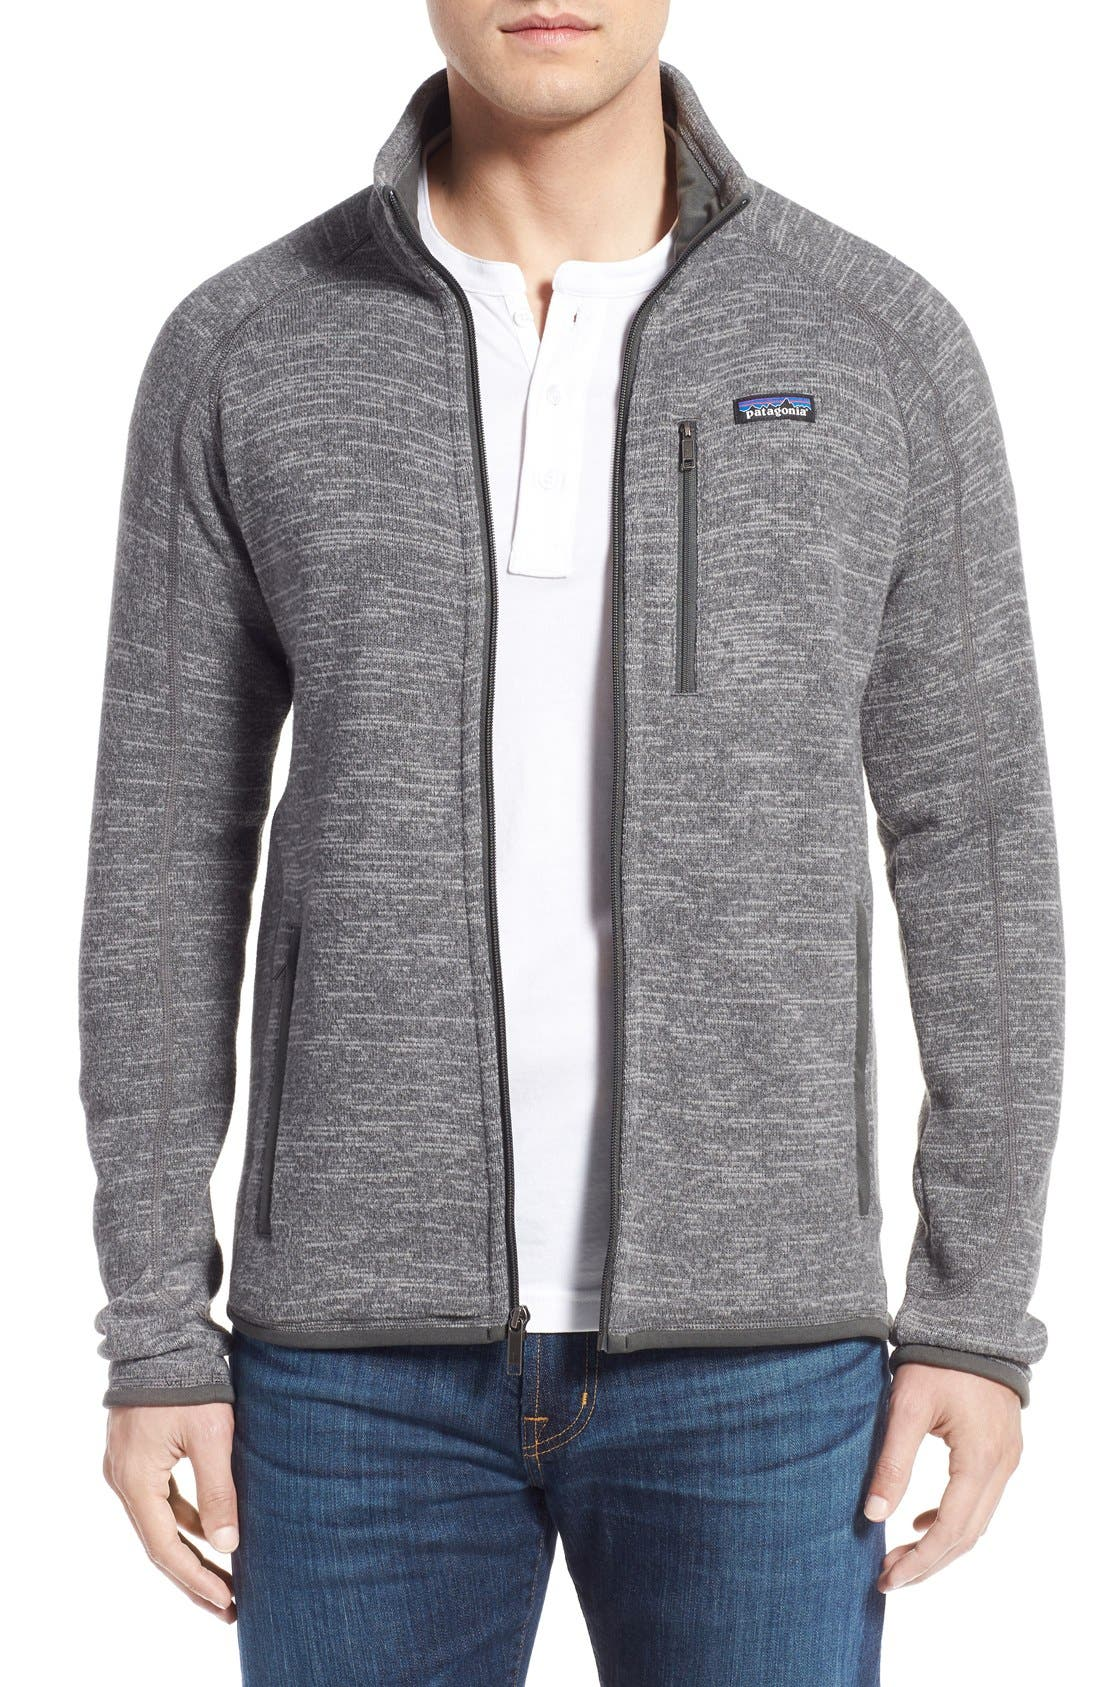 Better Sweater Zip Front Jacket,                         Main,                         color, NICKEL/ FORGE GREY